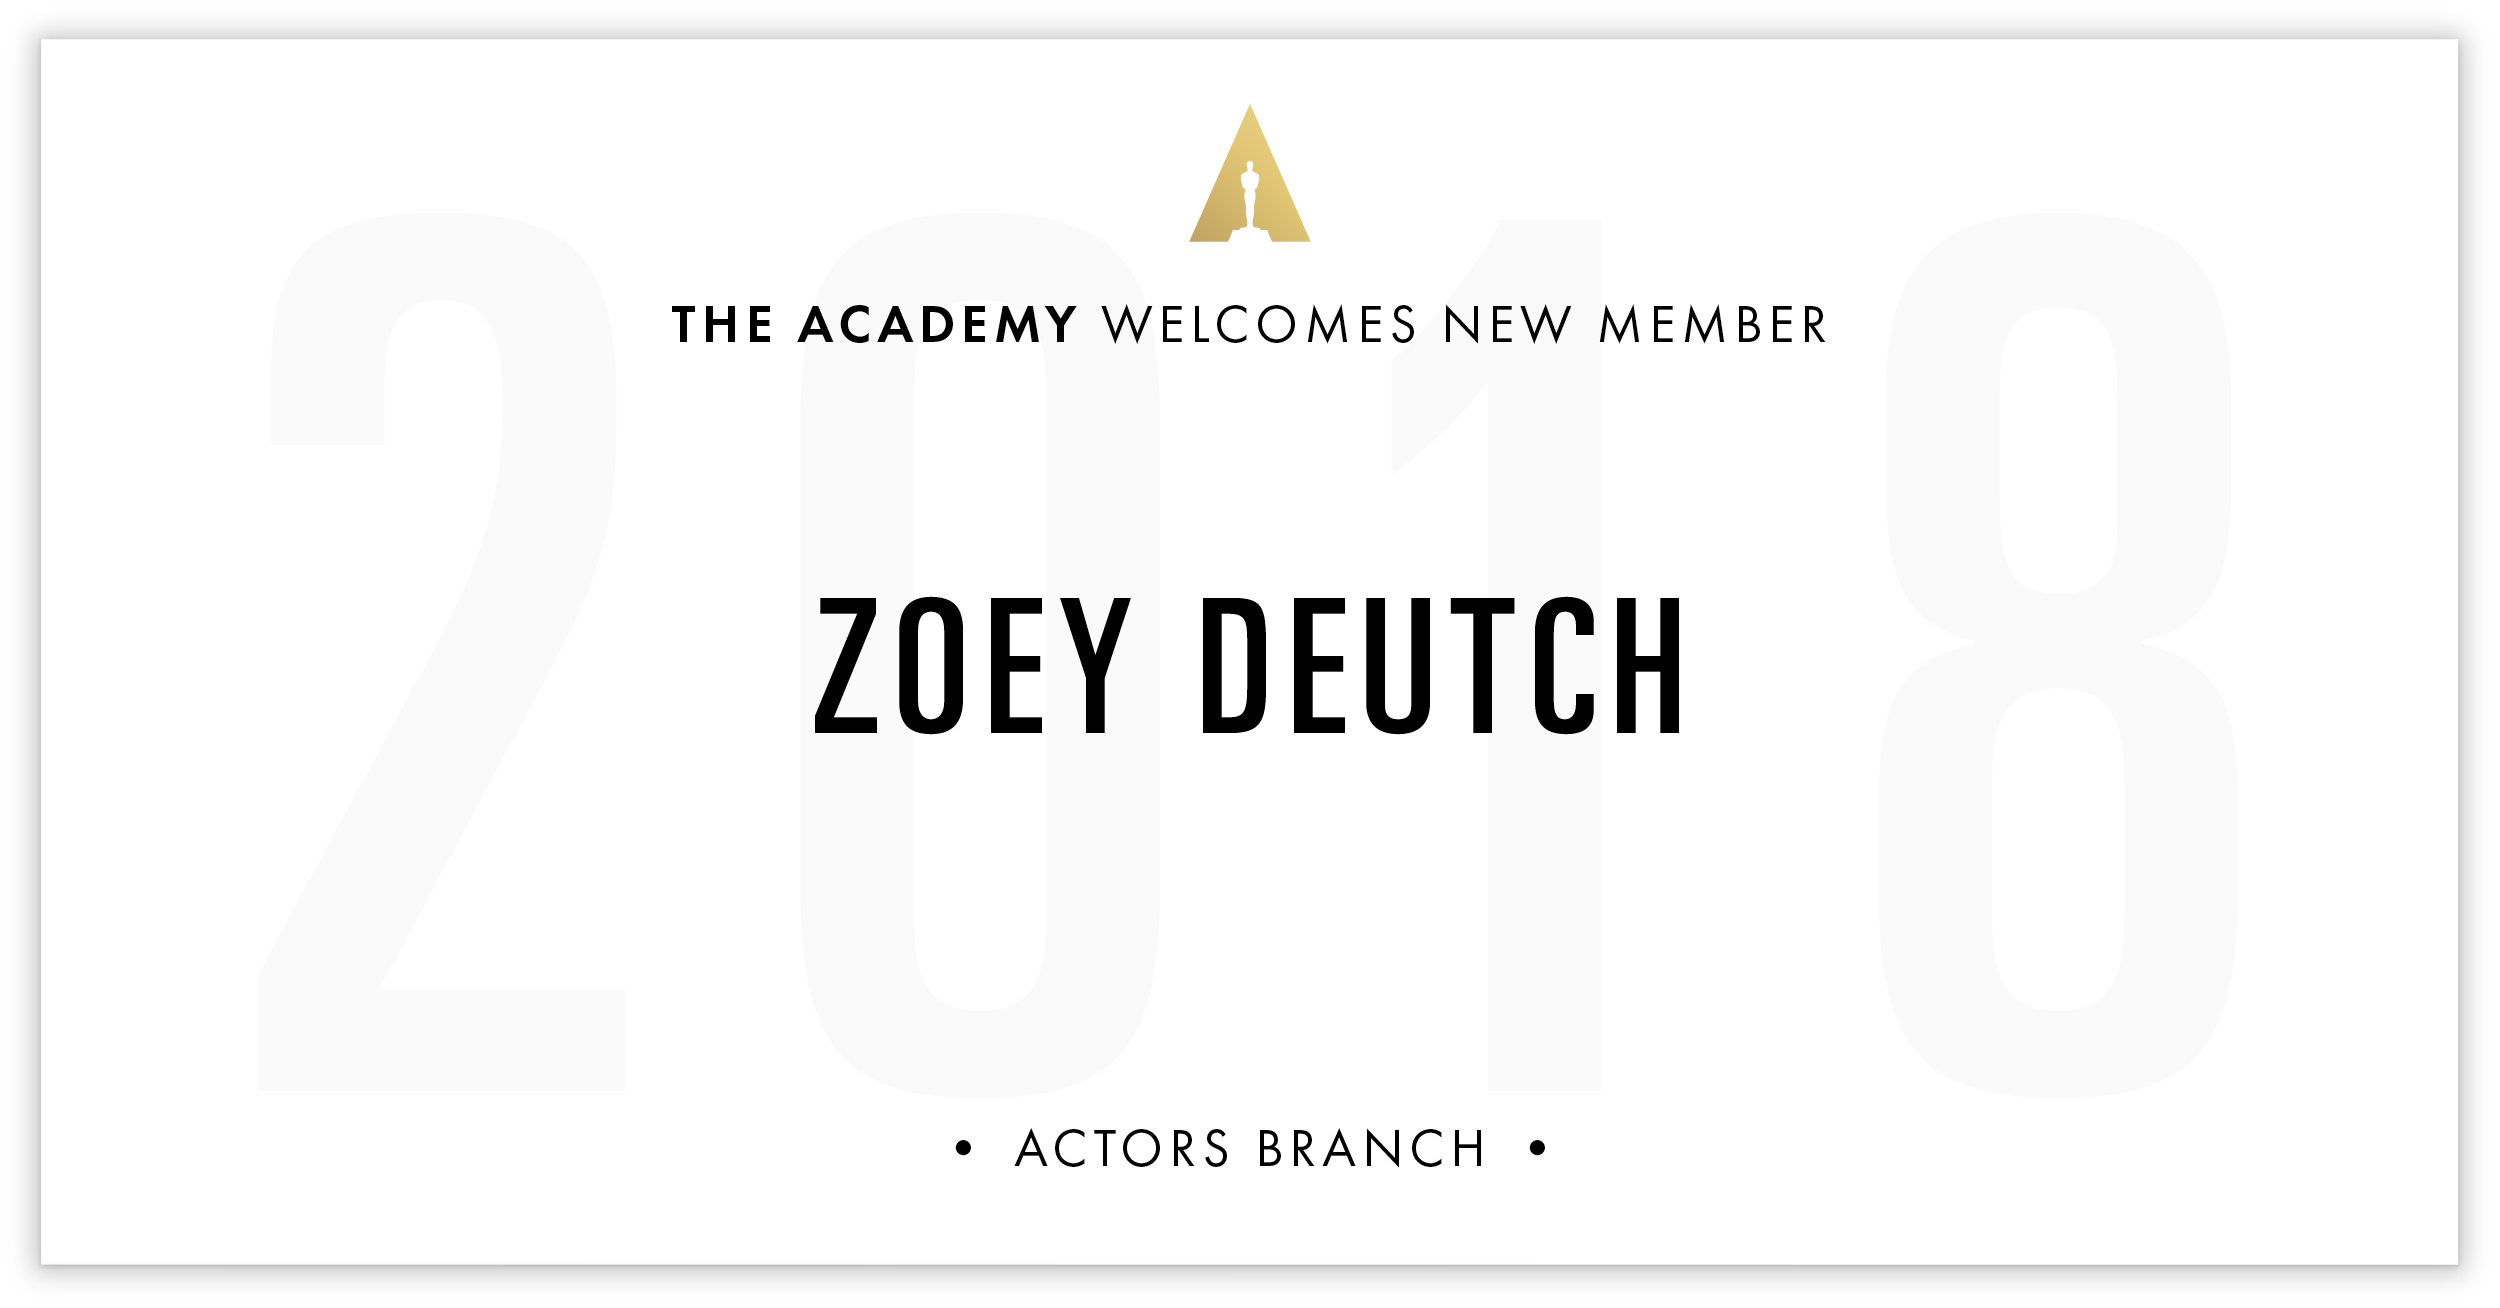 Zoey Deutch is invited!